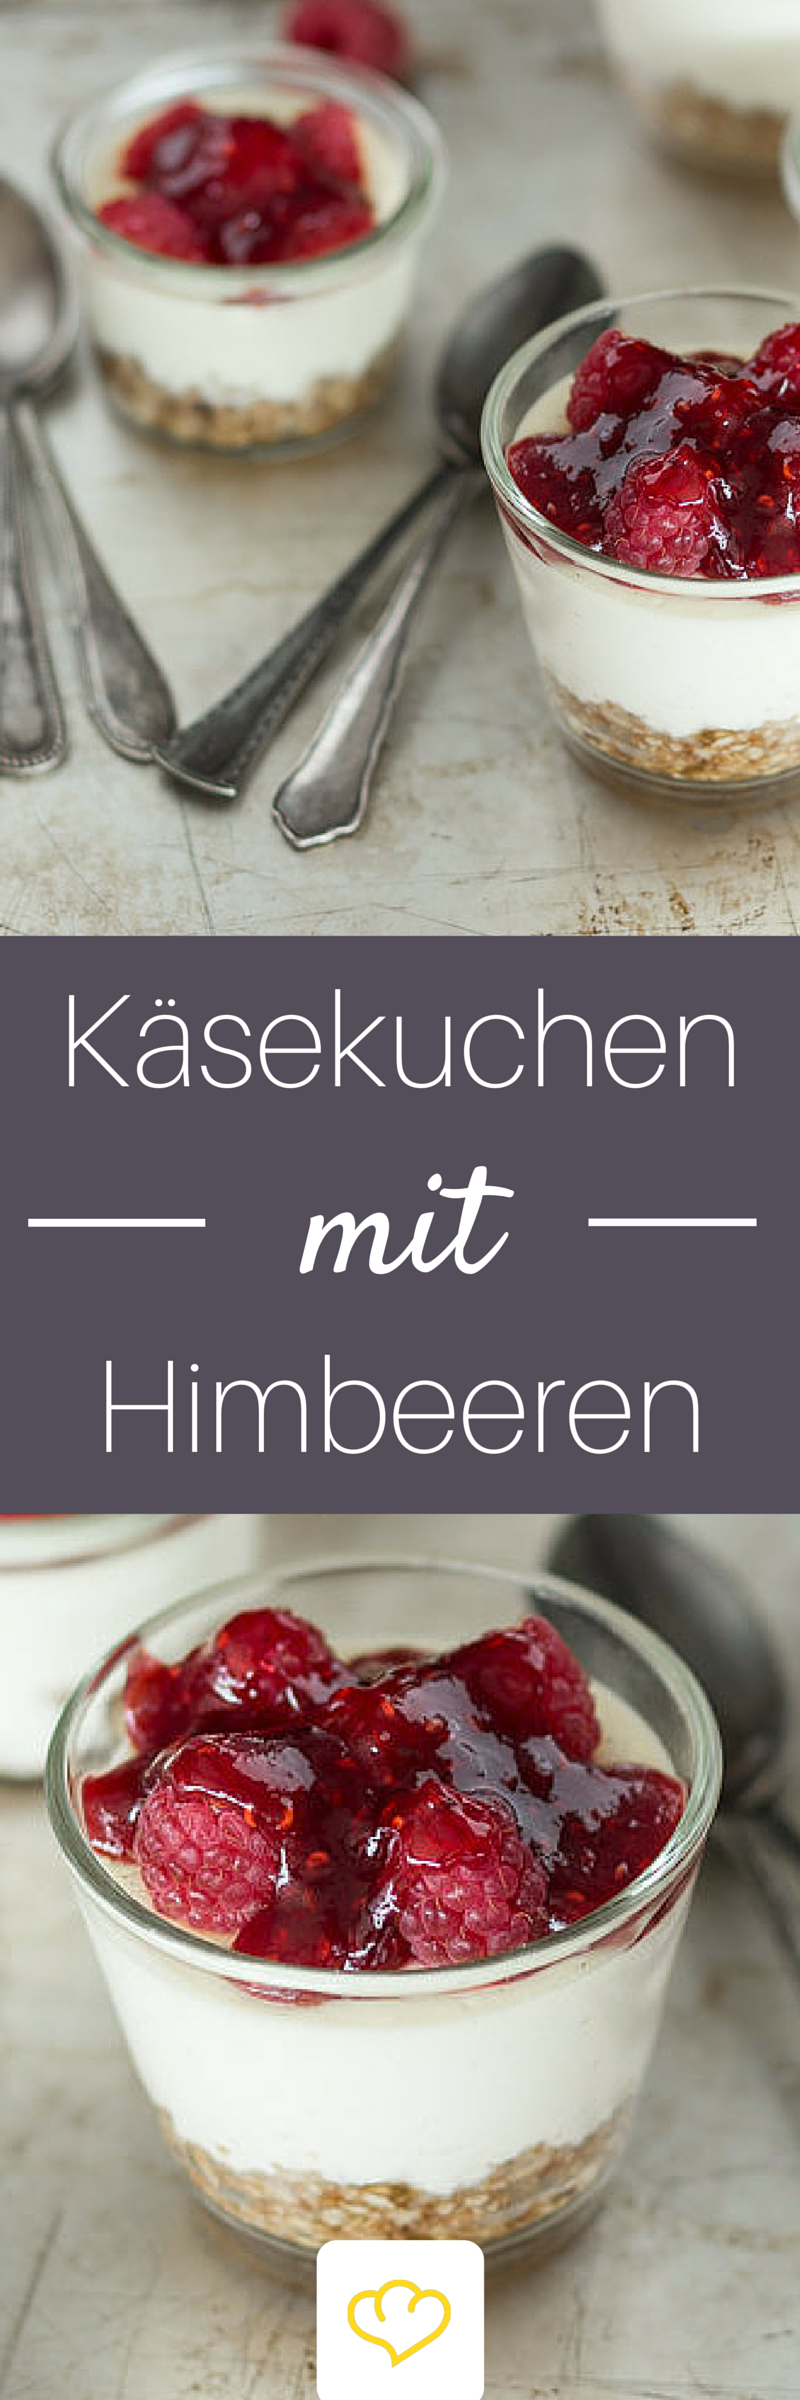 himbeer k sekuchen im glas rezept kuchen pinterest kuchen k sekuchen und dessert. Black Bedroom Furniture Sets. Home Design Ideas